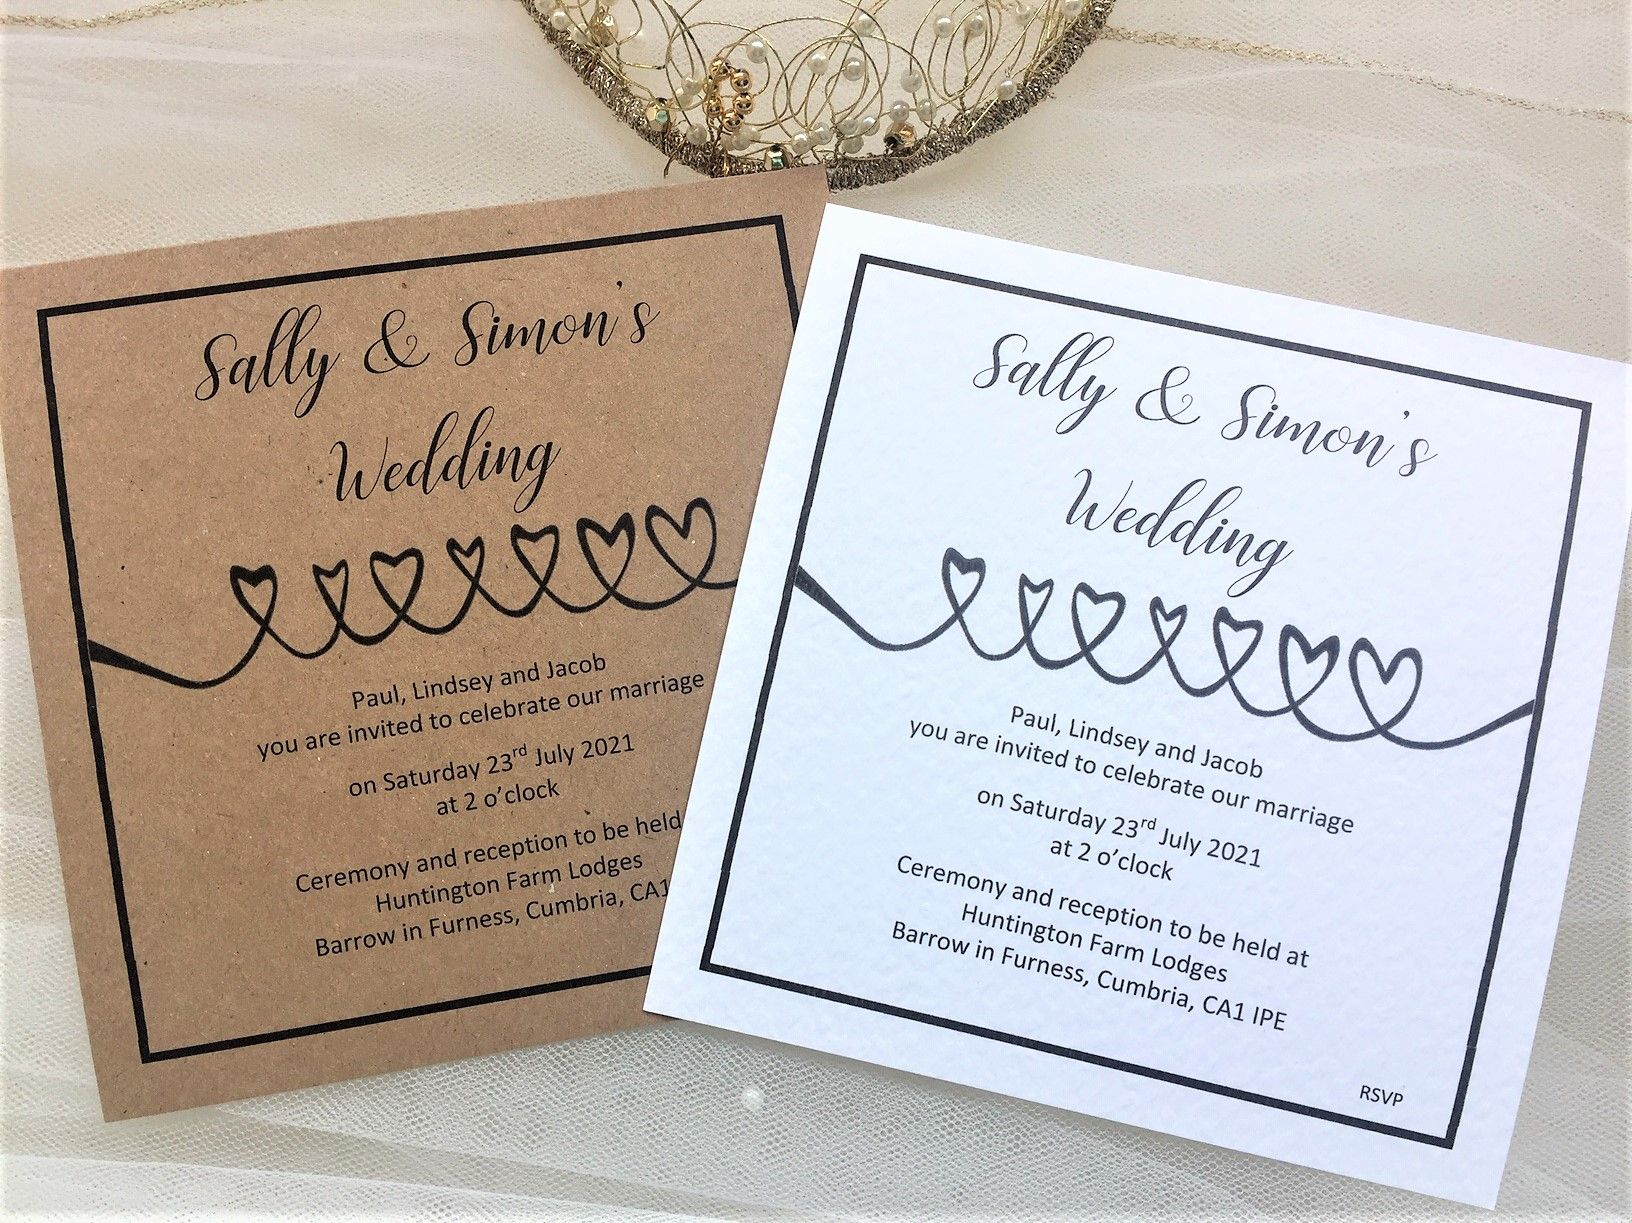 Linked Hearts Wedding Invitations 1 10 Each Free Guest Name Printing Heart Wedding Invitations Wedding Invitations Heart Wedding